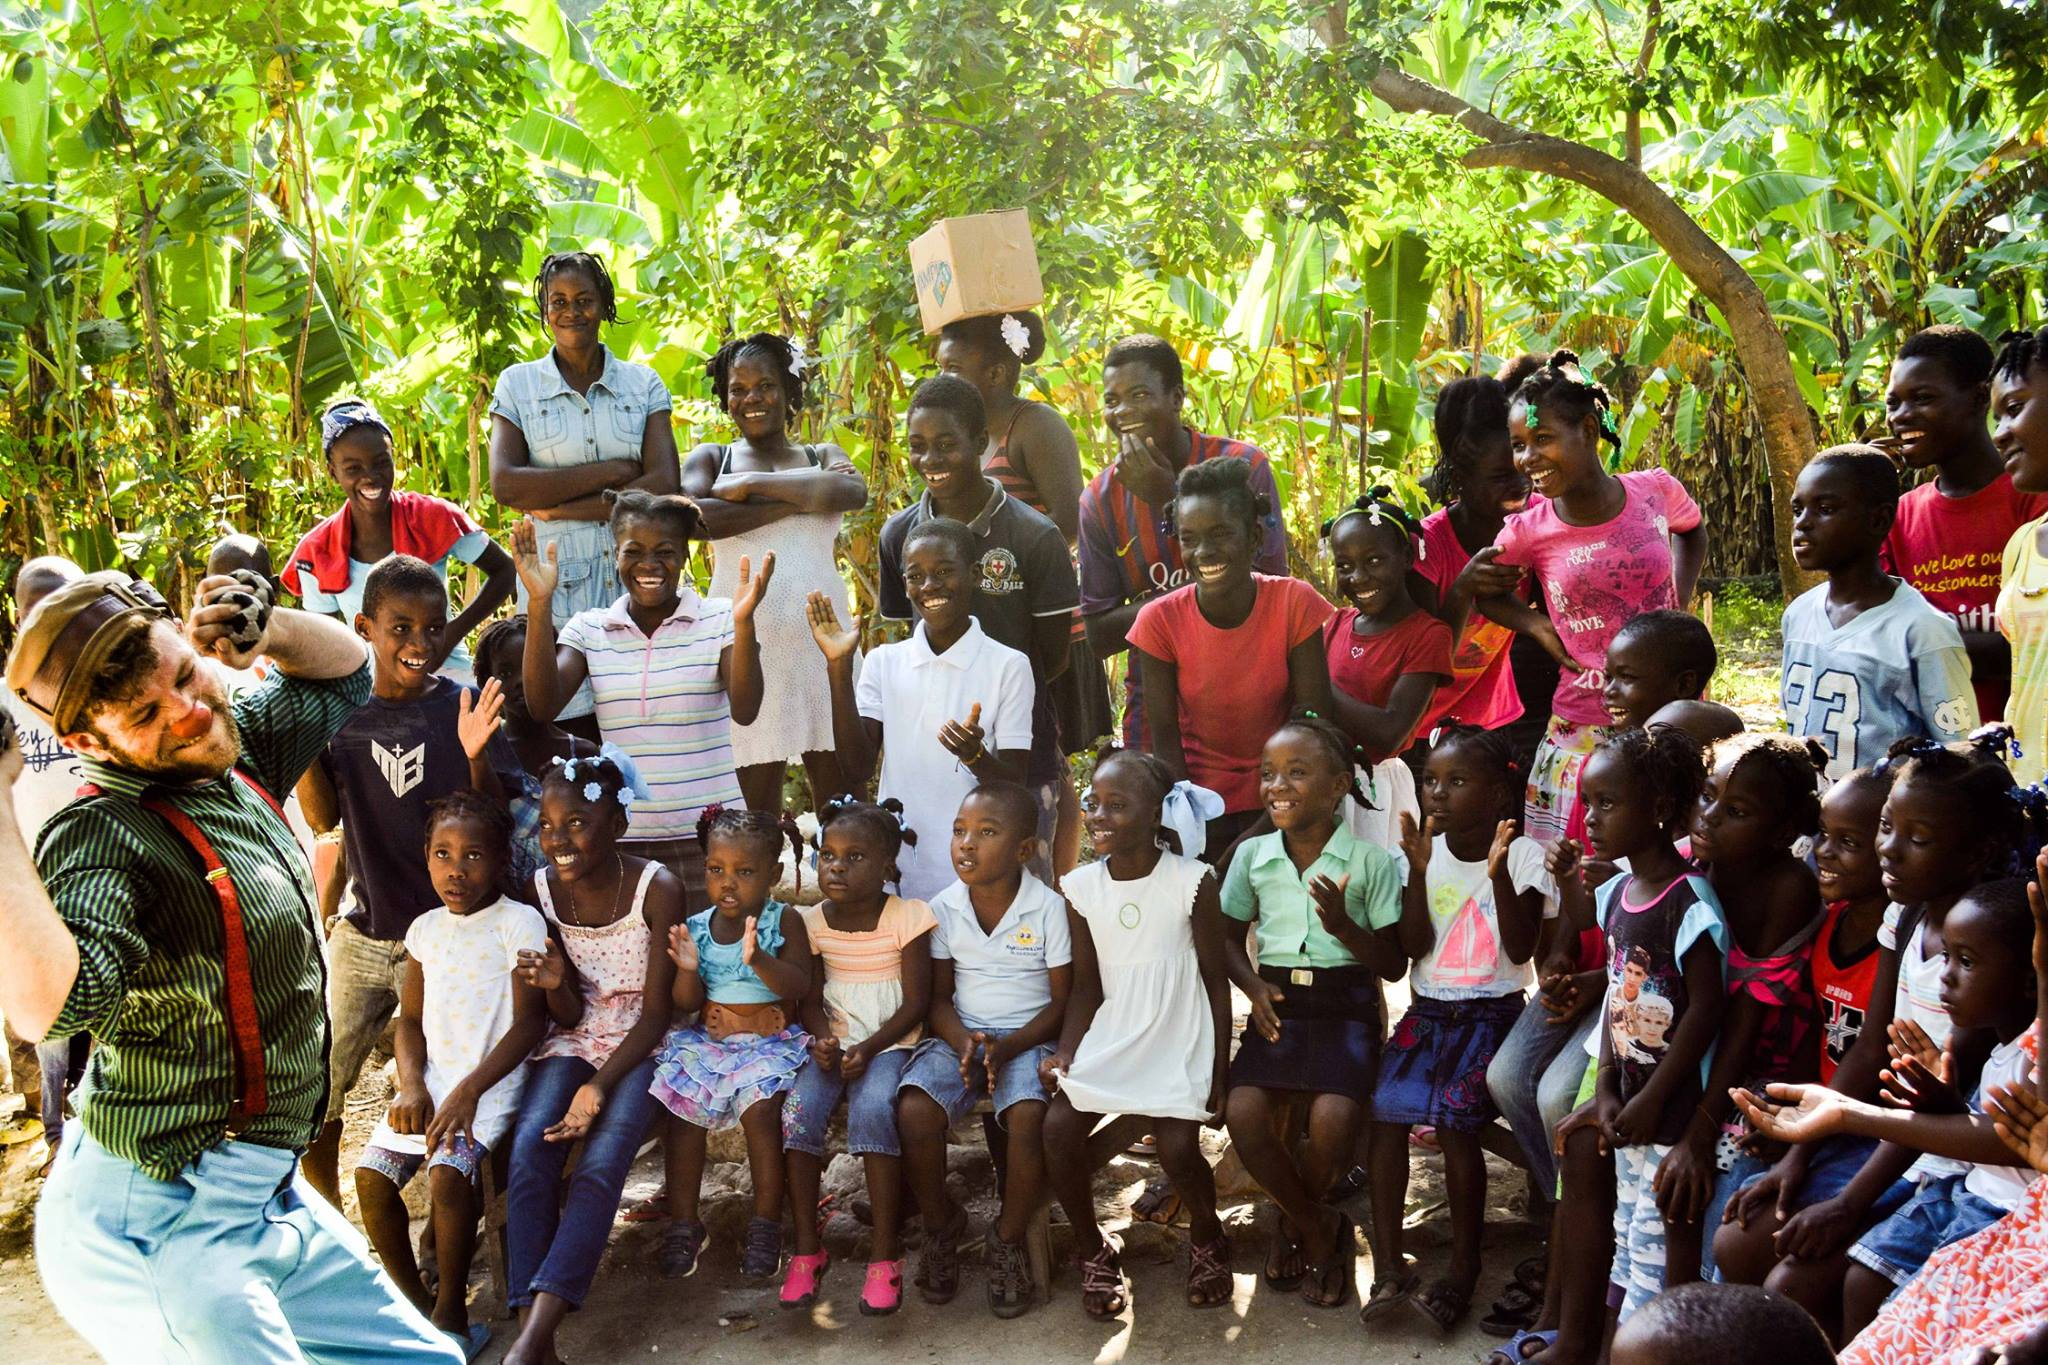 The crowd in a rural village in Haiti.